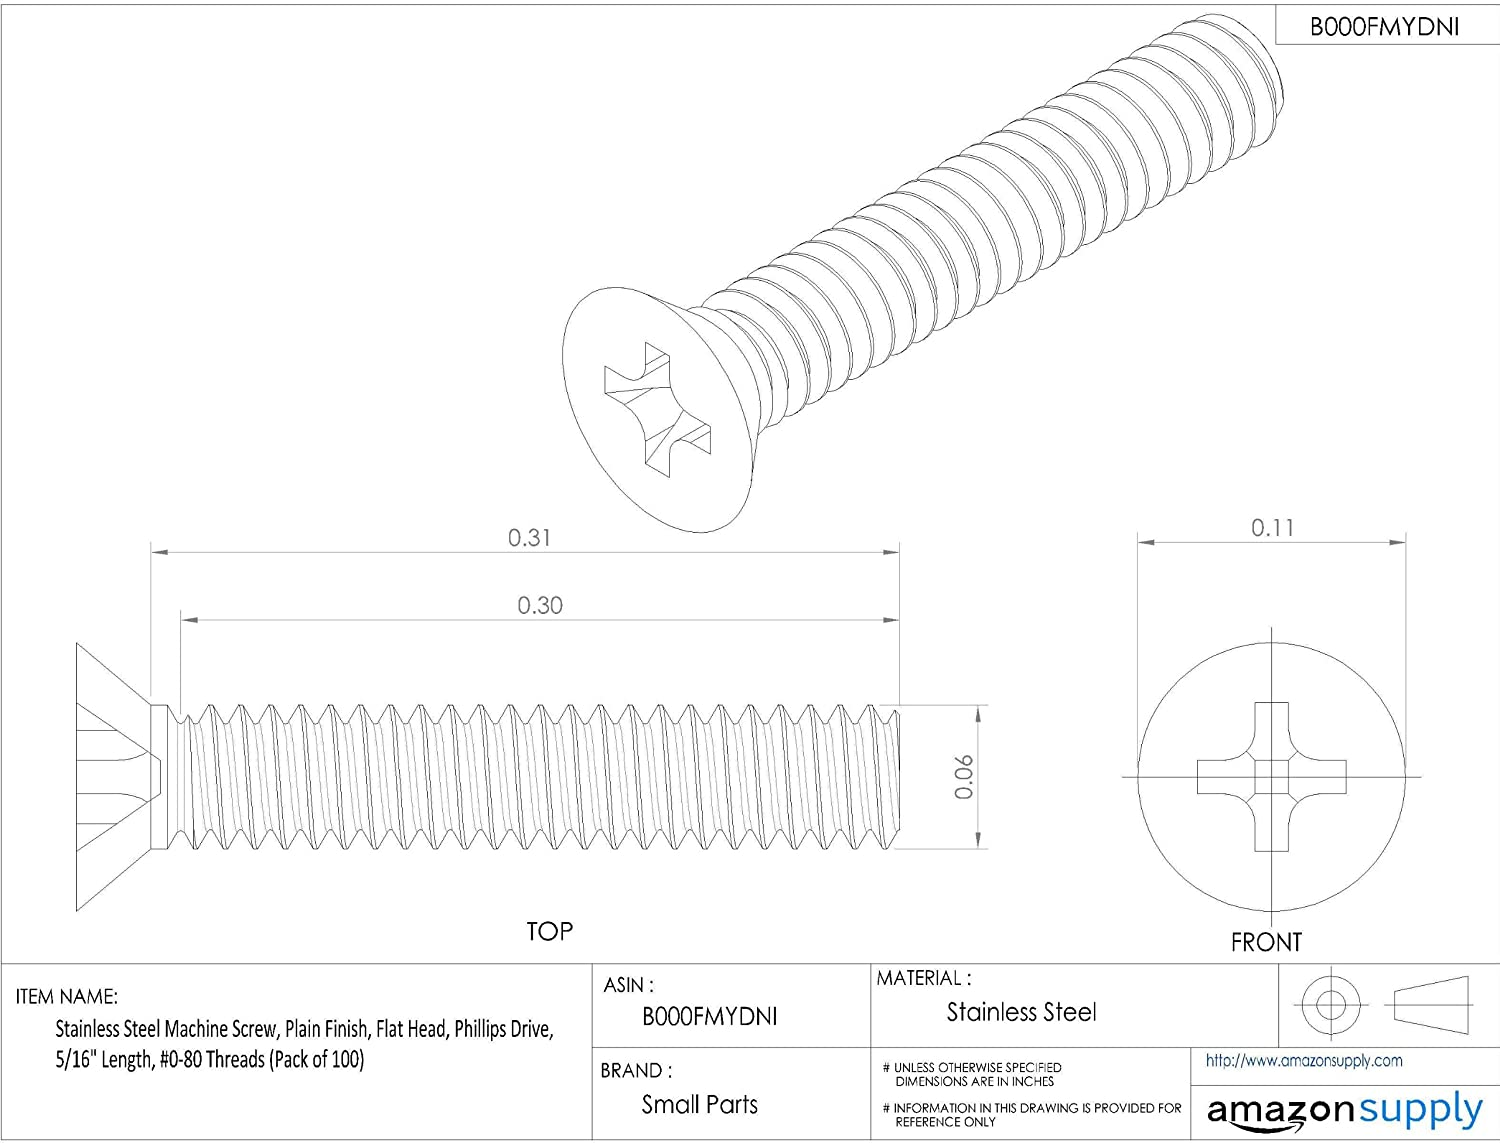 Plain Finish Phillips Drive Pack of 100 Stainless Steel Machine Screw 5//16 Length Small Parts B000FMYDNI #0-80 Threads 5//16 Length Flat Head